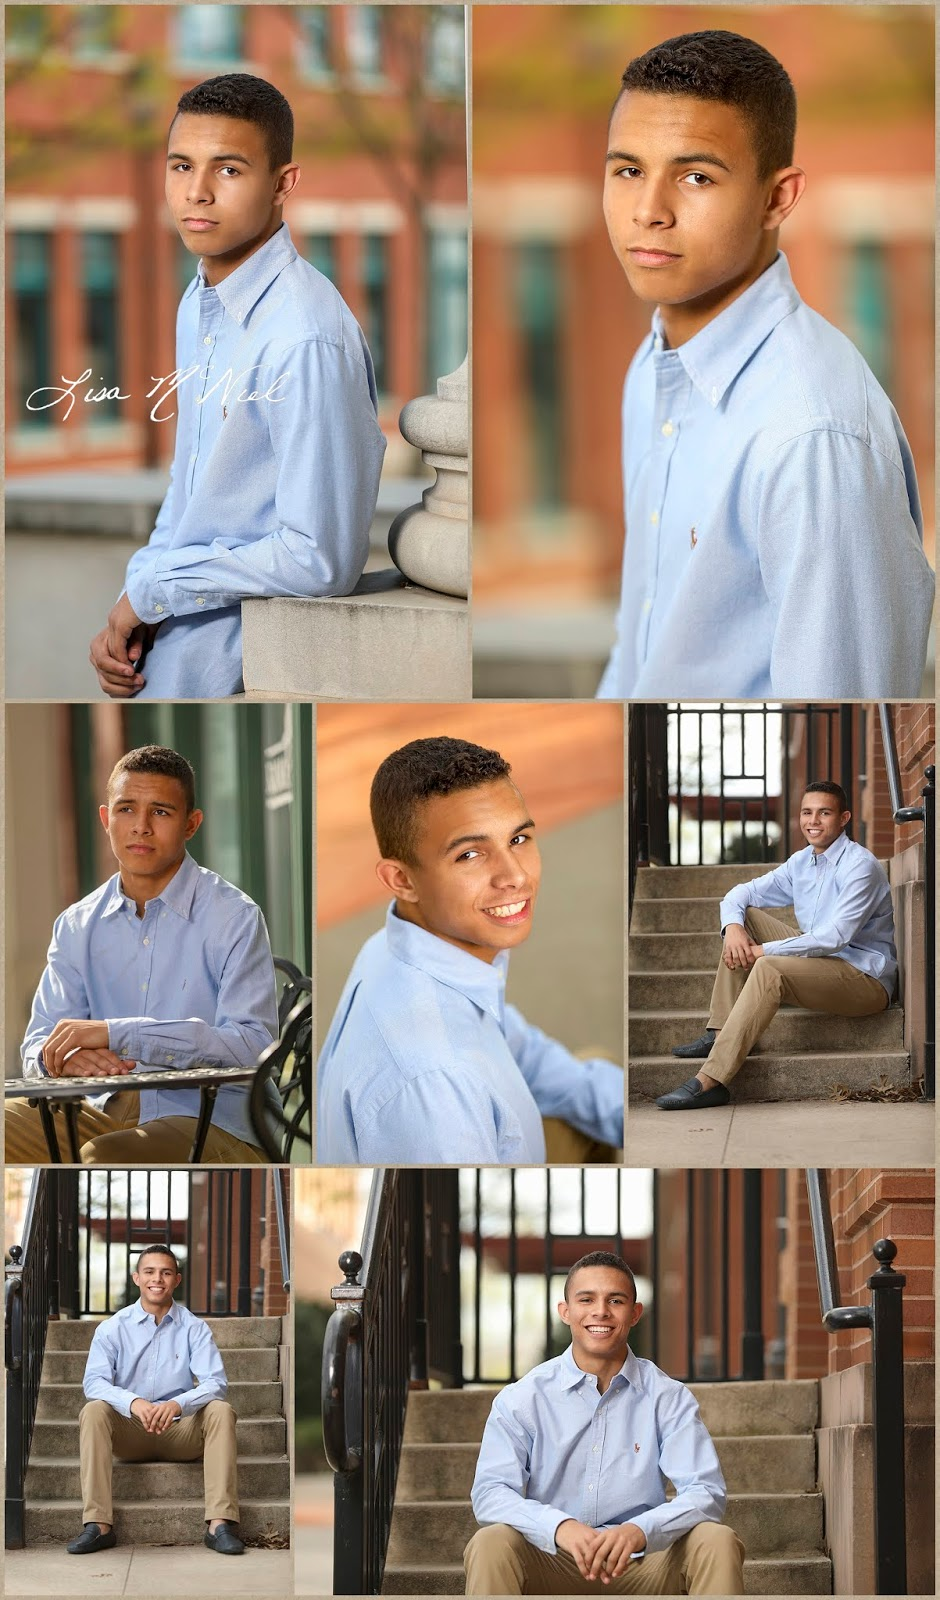 collage of young man in various poses urban setting